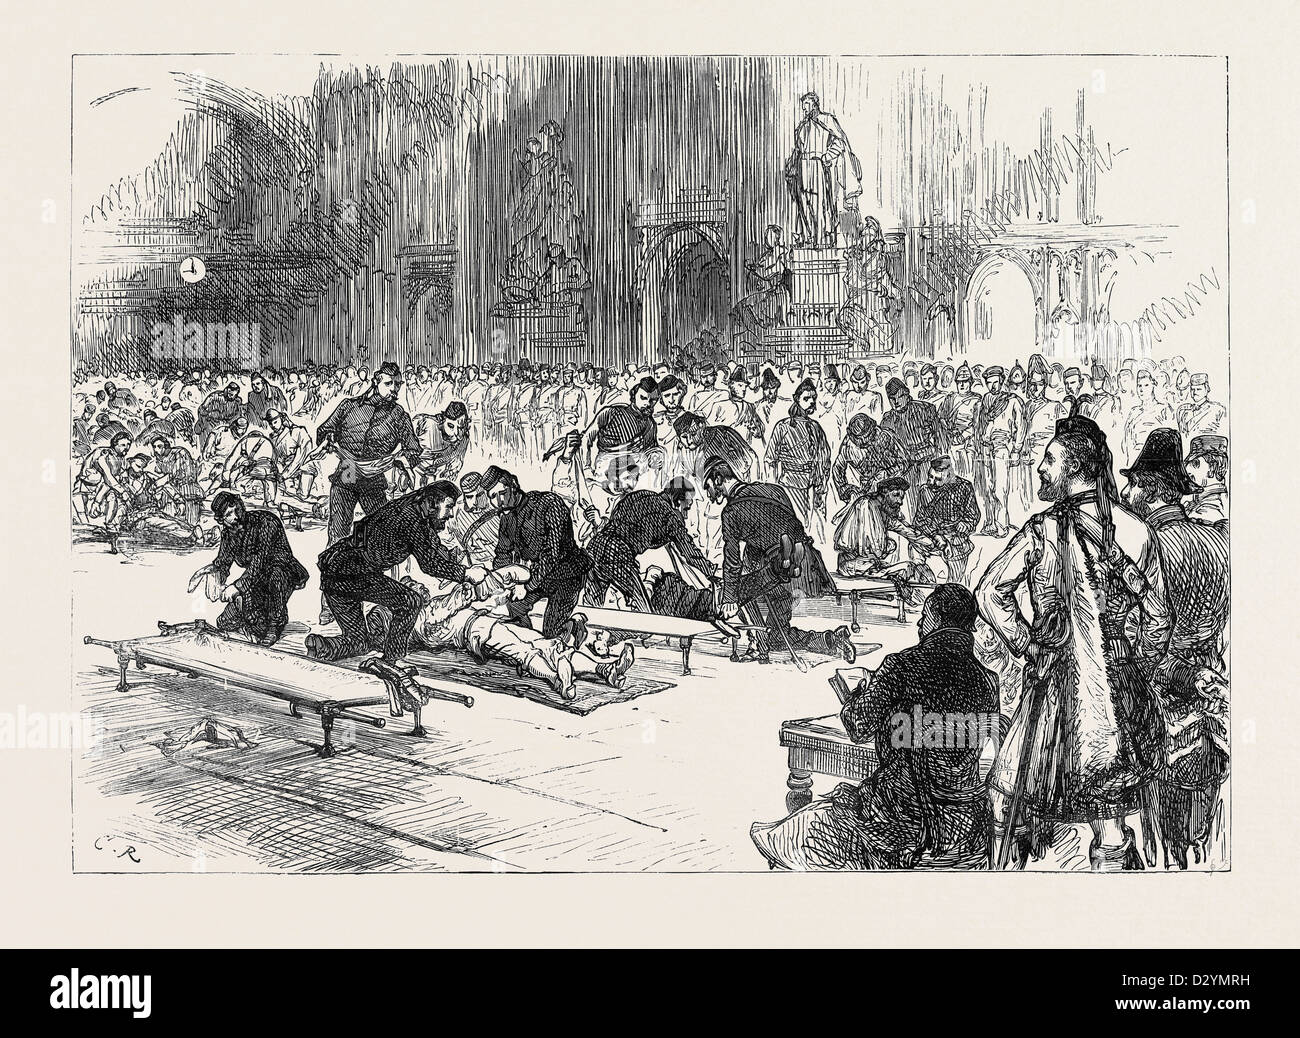 DRILL OF VOLUNTEER AMBULANCE CORPS AT GUILDHALL 1880 - Stock Image